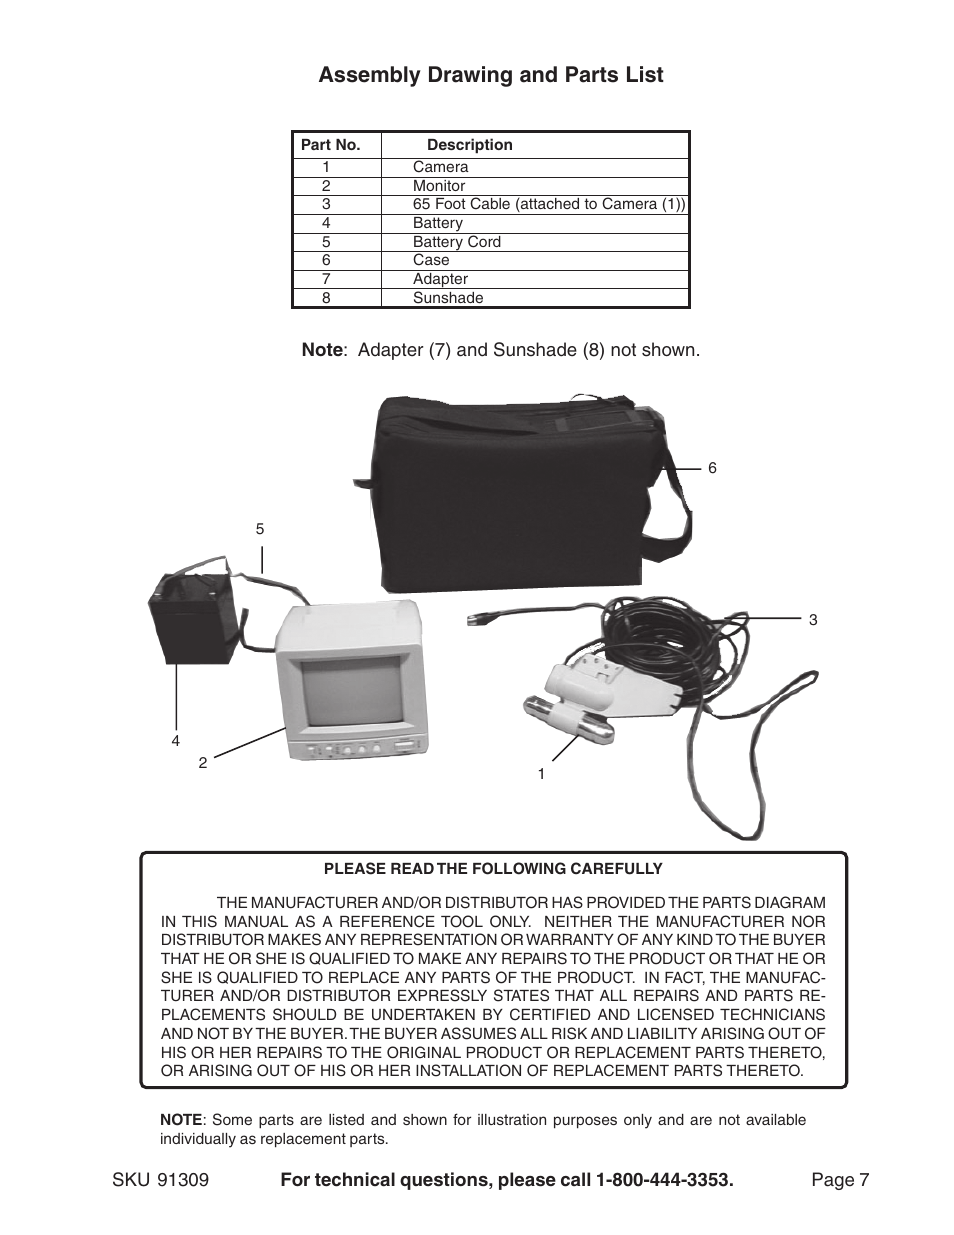 Assembly Drawing And Parts List Harbor Freight Tools 91309 User Camera Wire Diagram Manual Page 7